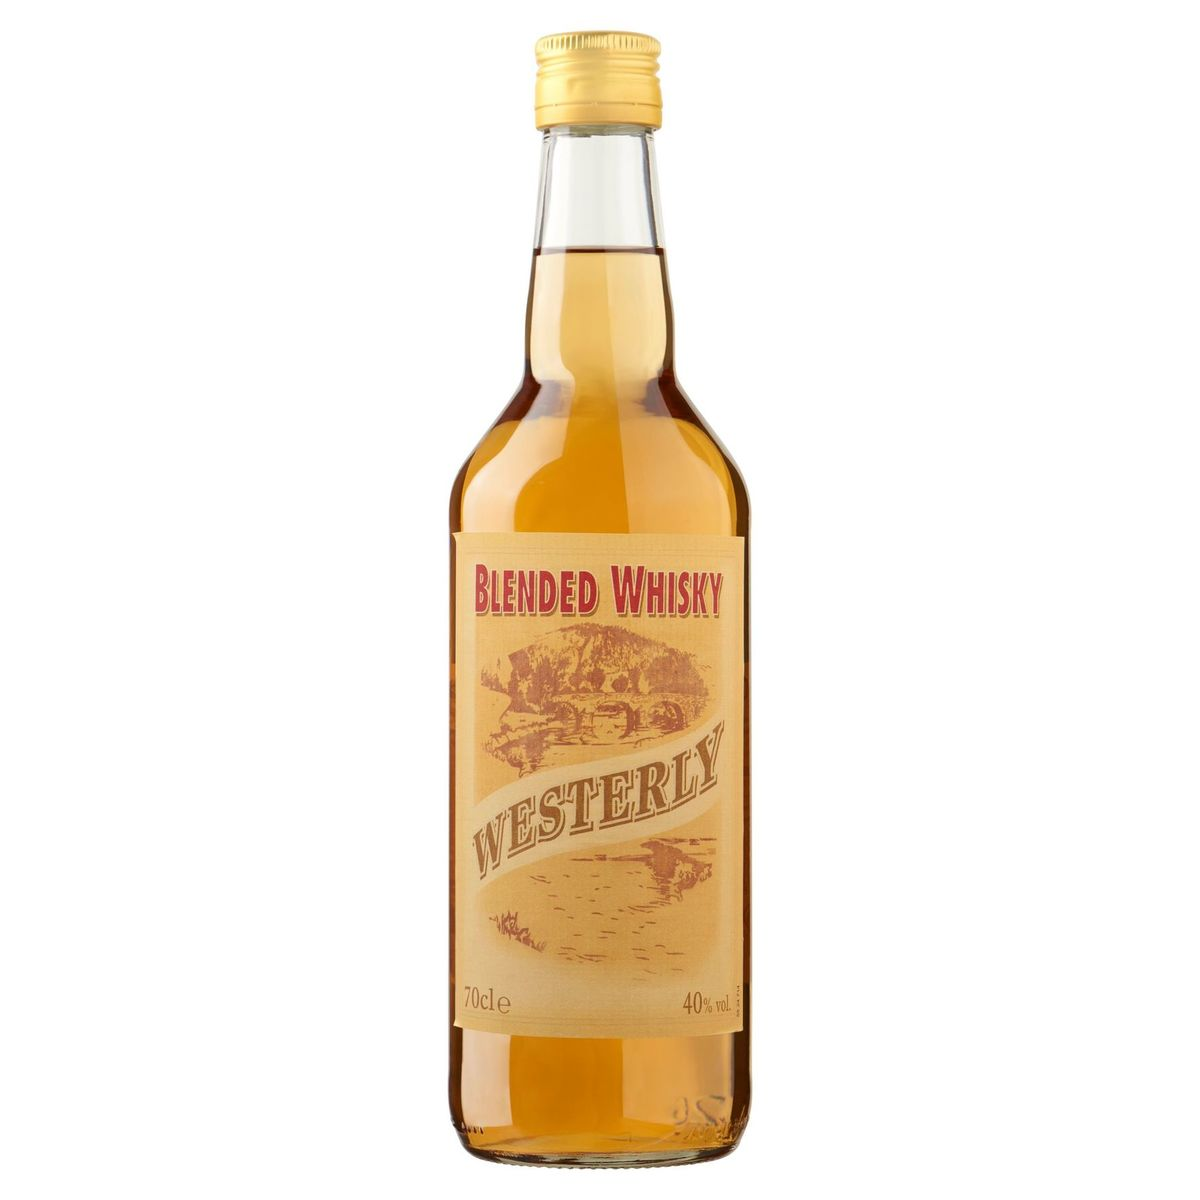 Westerly Blended Whisky 70 cl